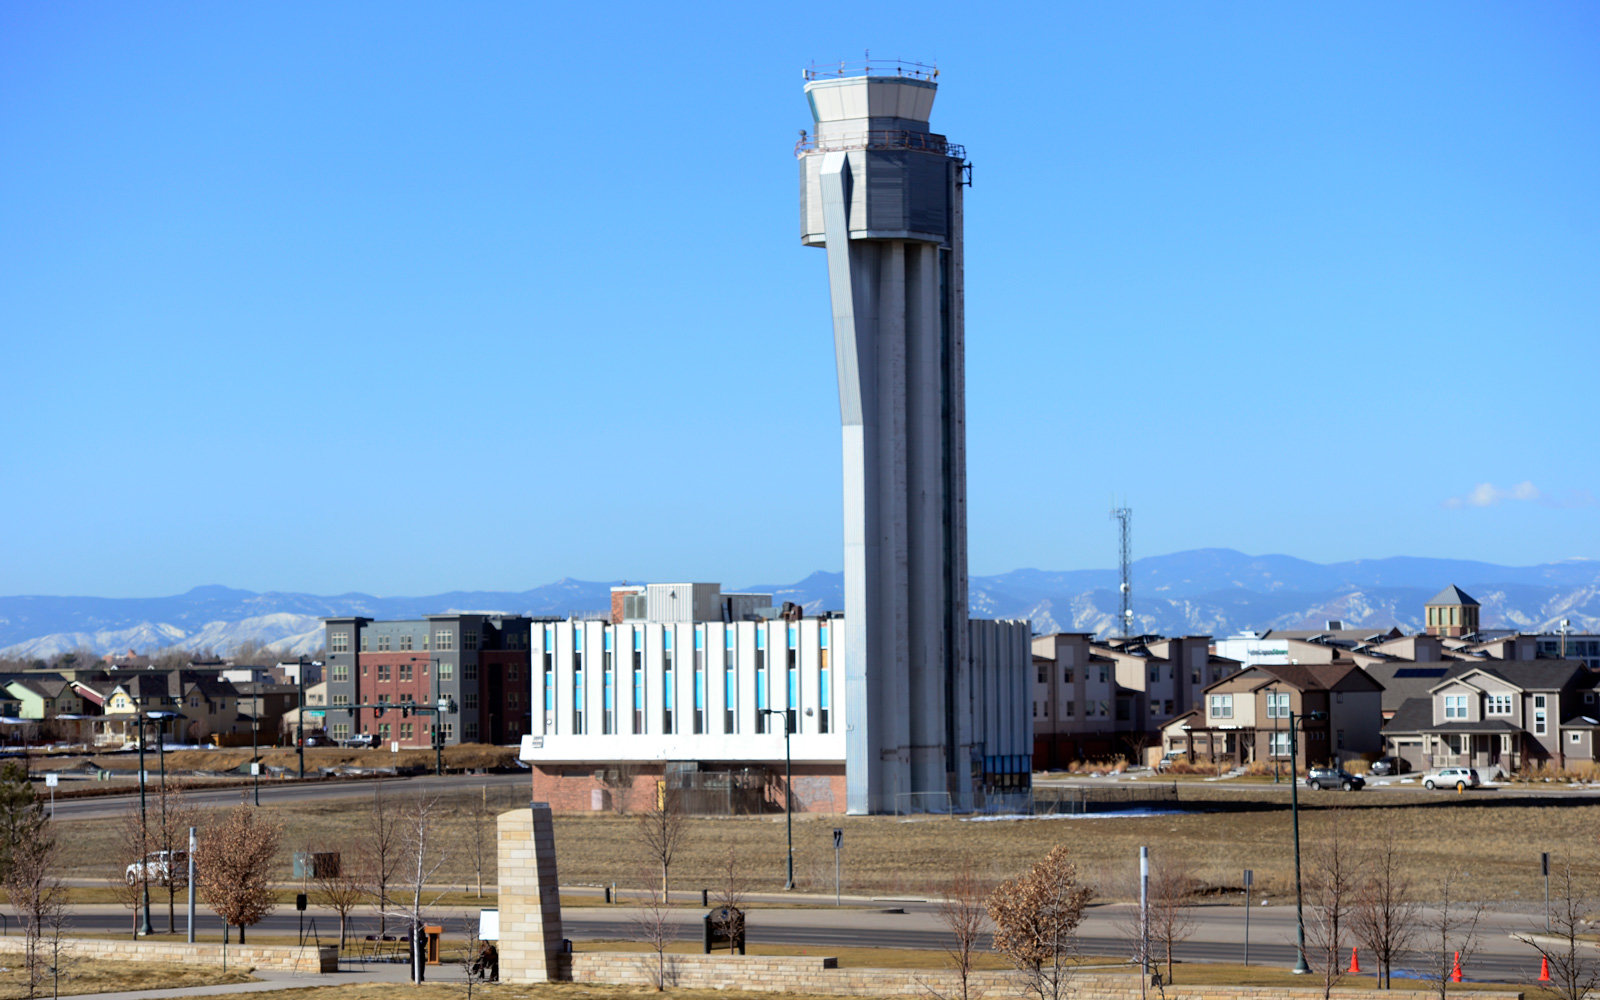 This old control tower is getting a new life in Stapleton, Colorado.